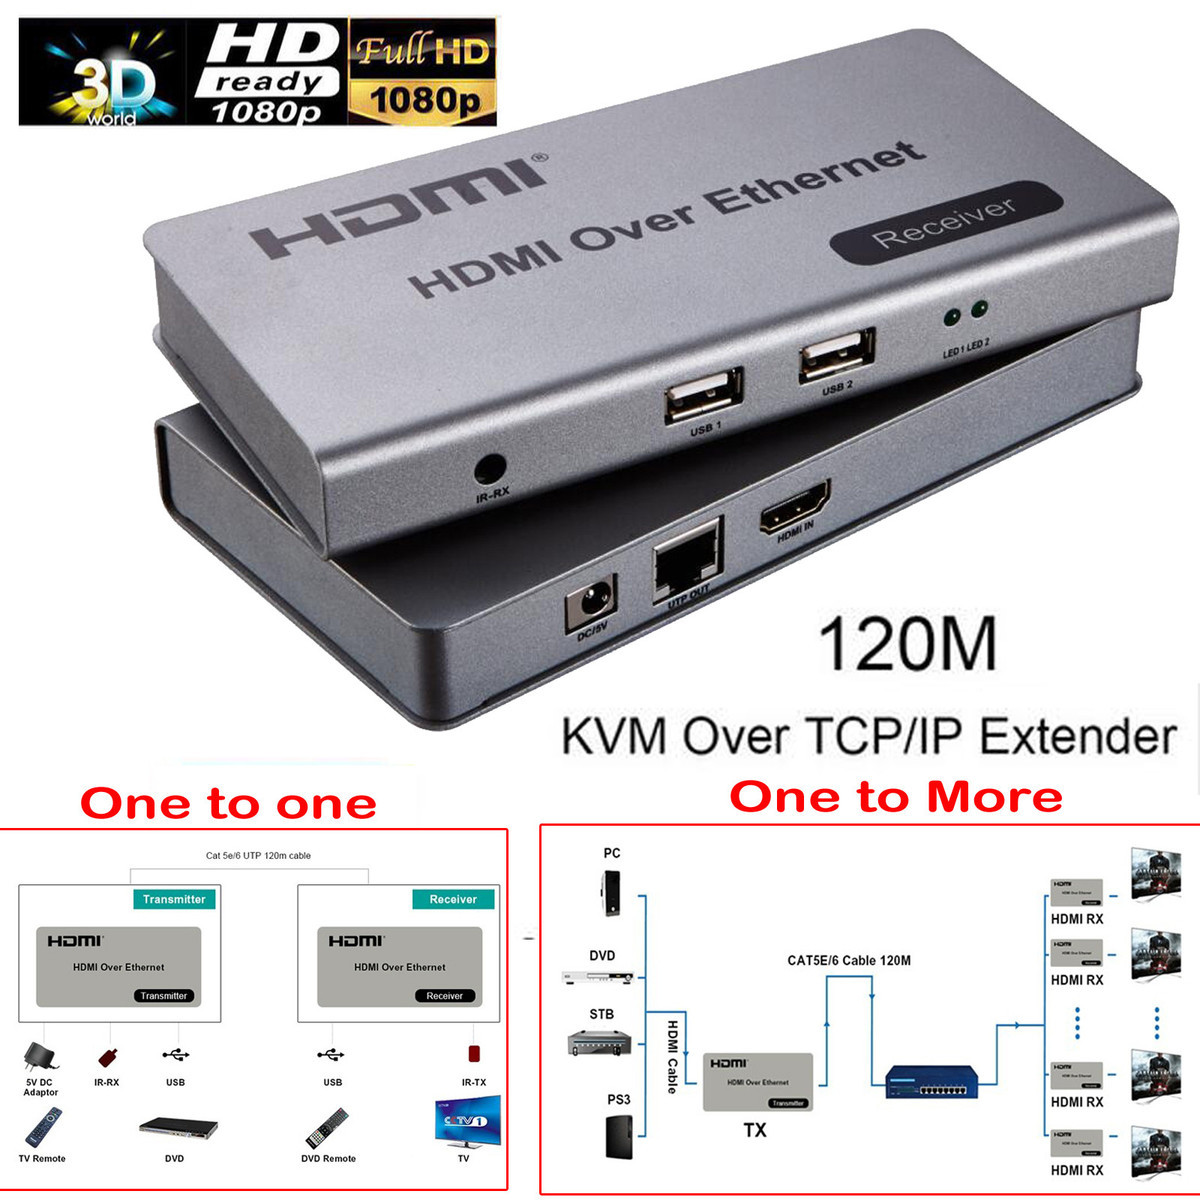 HDMI TCP/IP 120 meters Full HD 1080P Mouse KeyBoard USB KVM Extender Via cat5e/6 Ethernet RJ45 Cable HDCP + IR Remote Extender 120m hdmi extender adapter ethernet cable over single cat5e 6 120m tcp ip standard ir remote control support hdtv 1080p hdcp